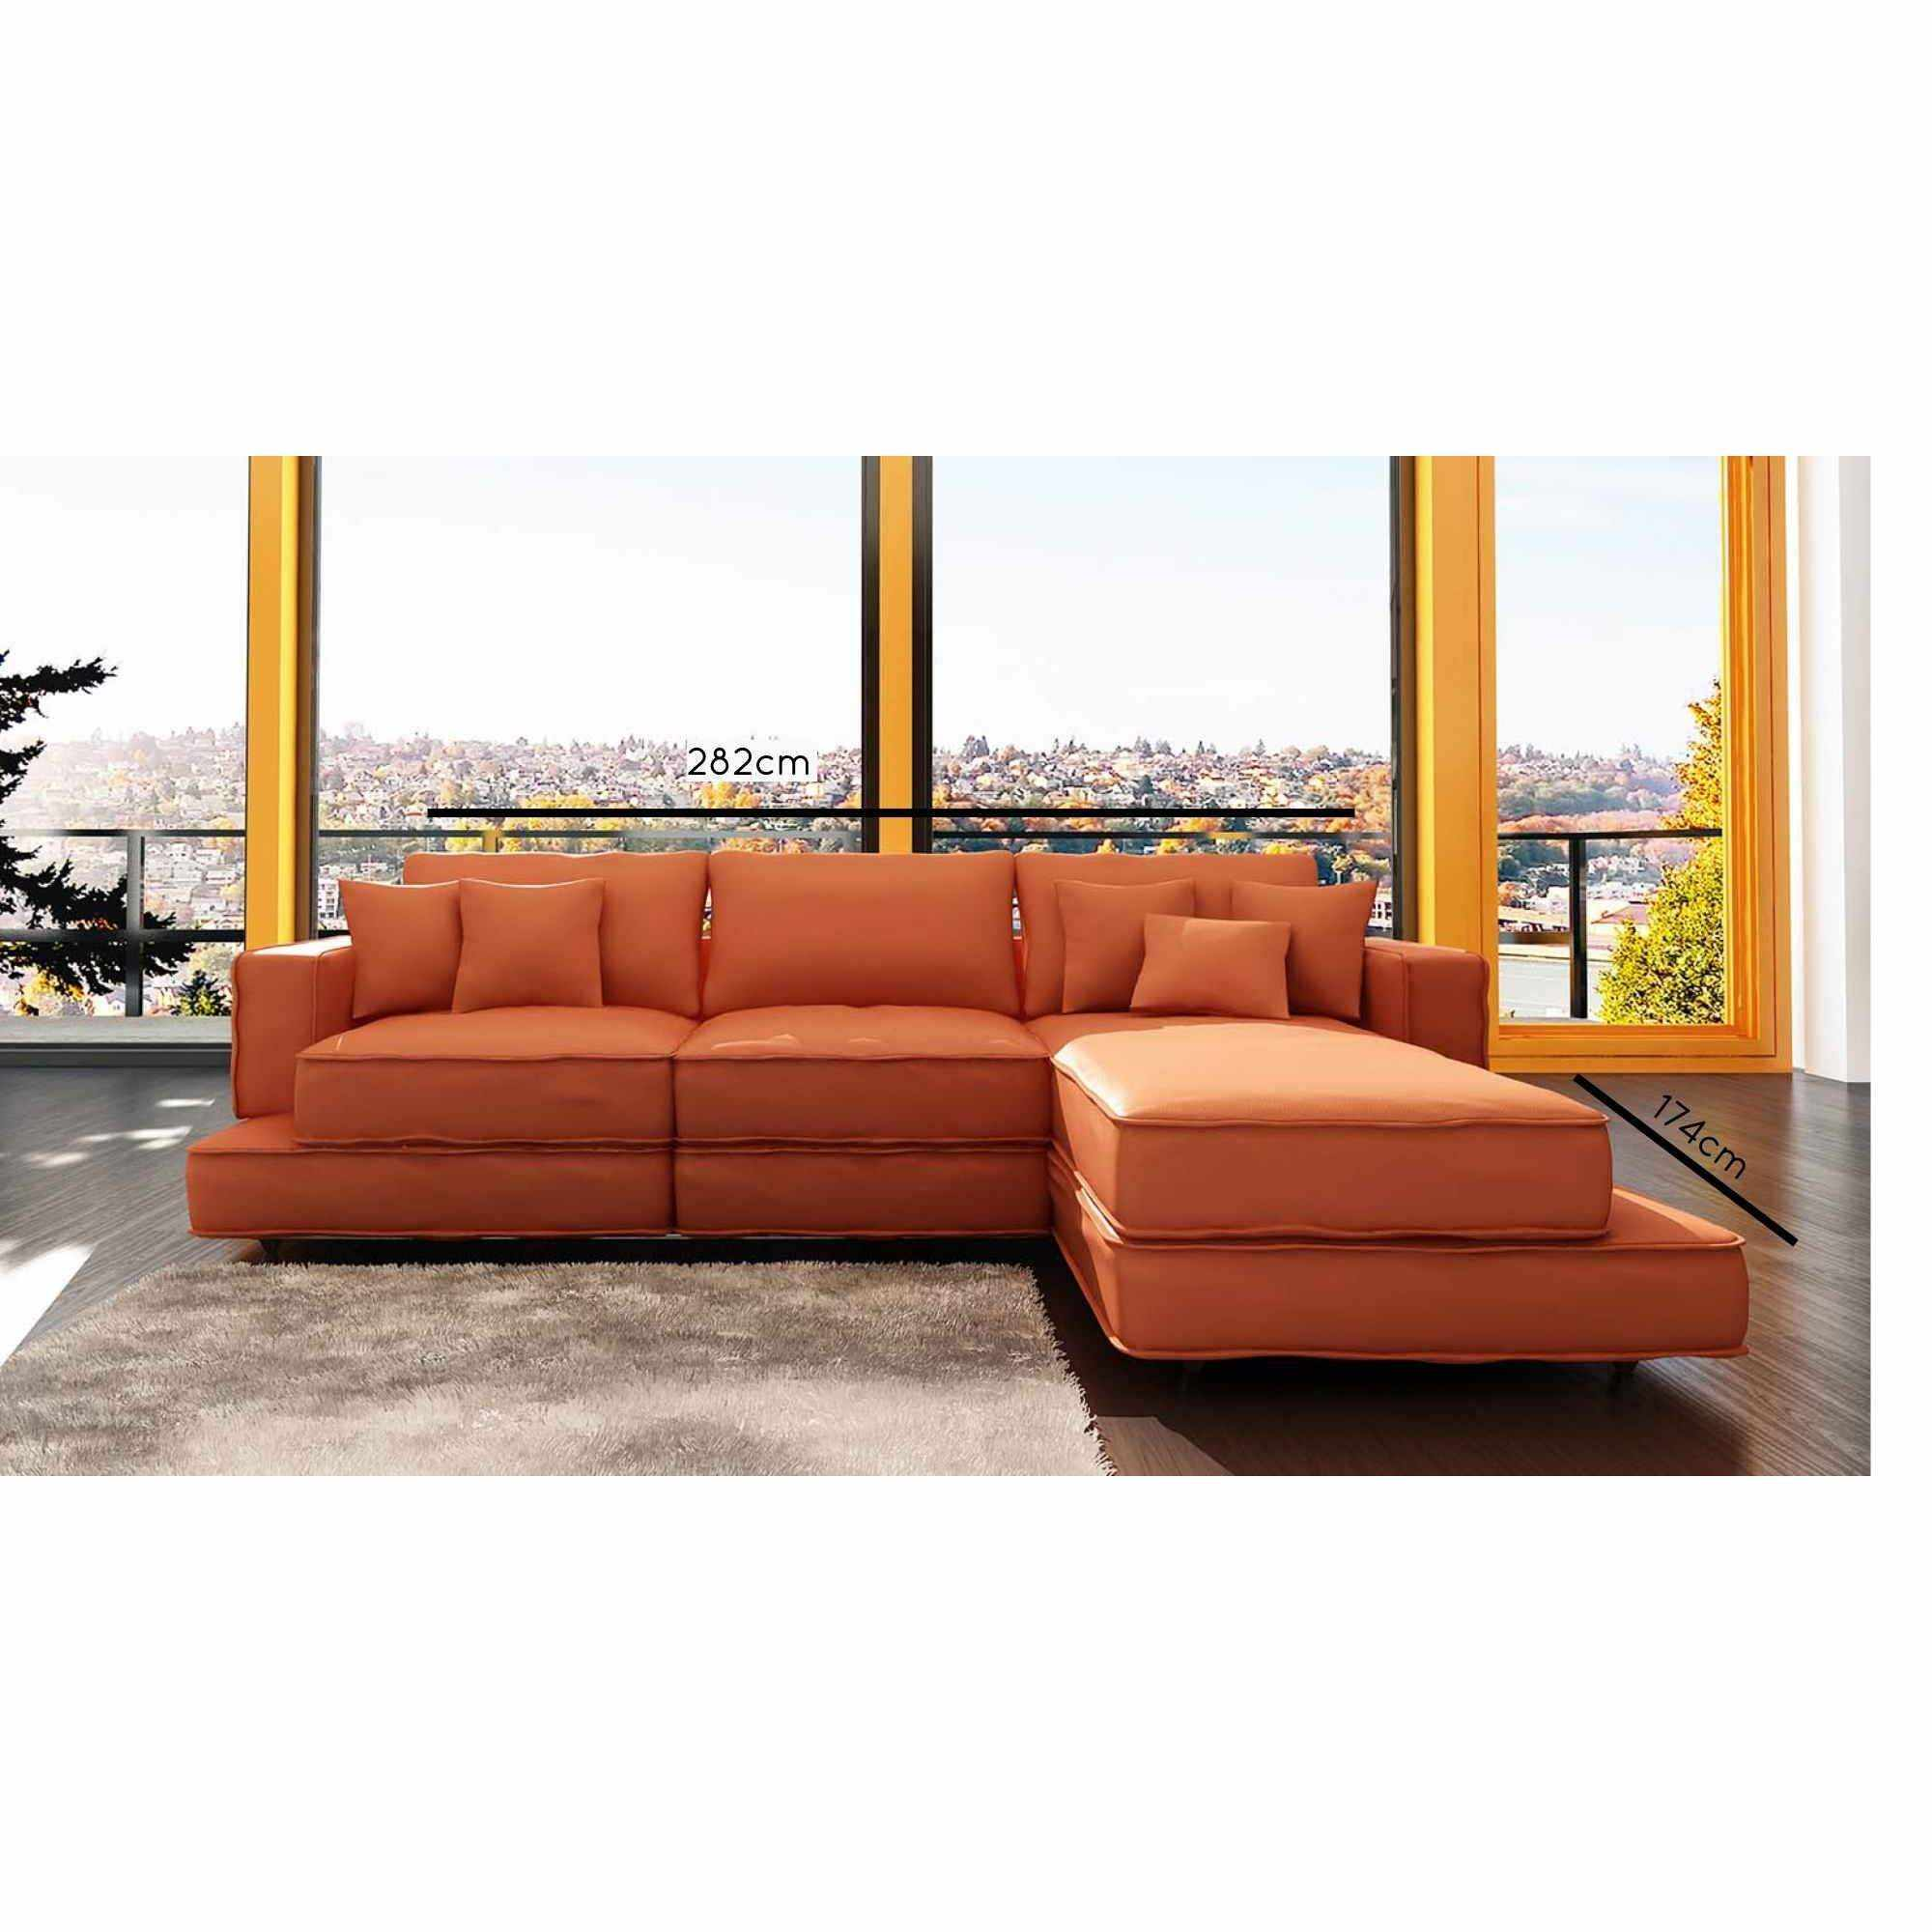 Deco in paris canape d angle en cuir orange vegas vegas - Canape d angle orange ...